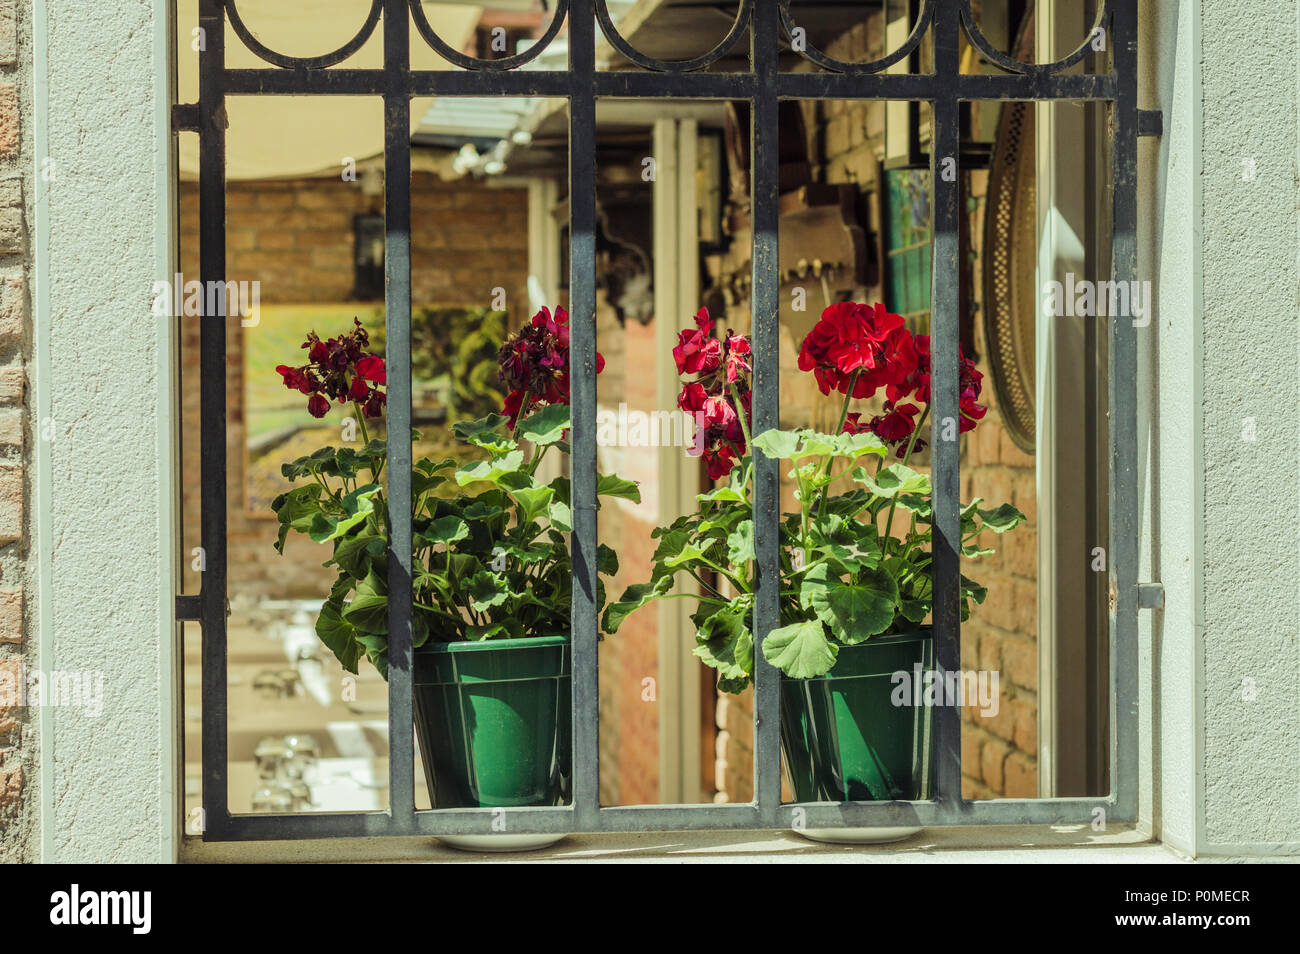 Two Flower Pots On Window Sill Outdoor Stock Photo 206974791 Alamy